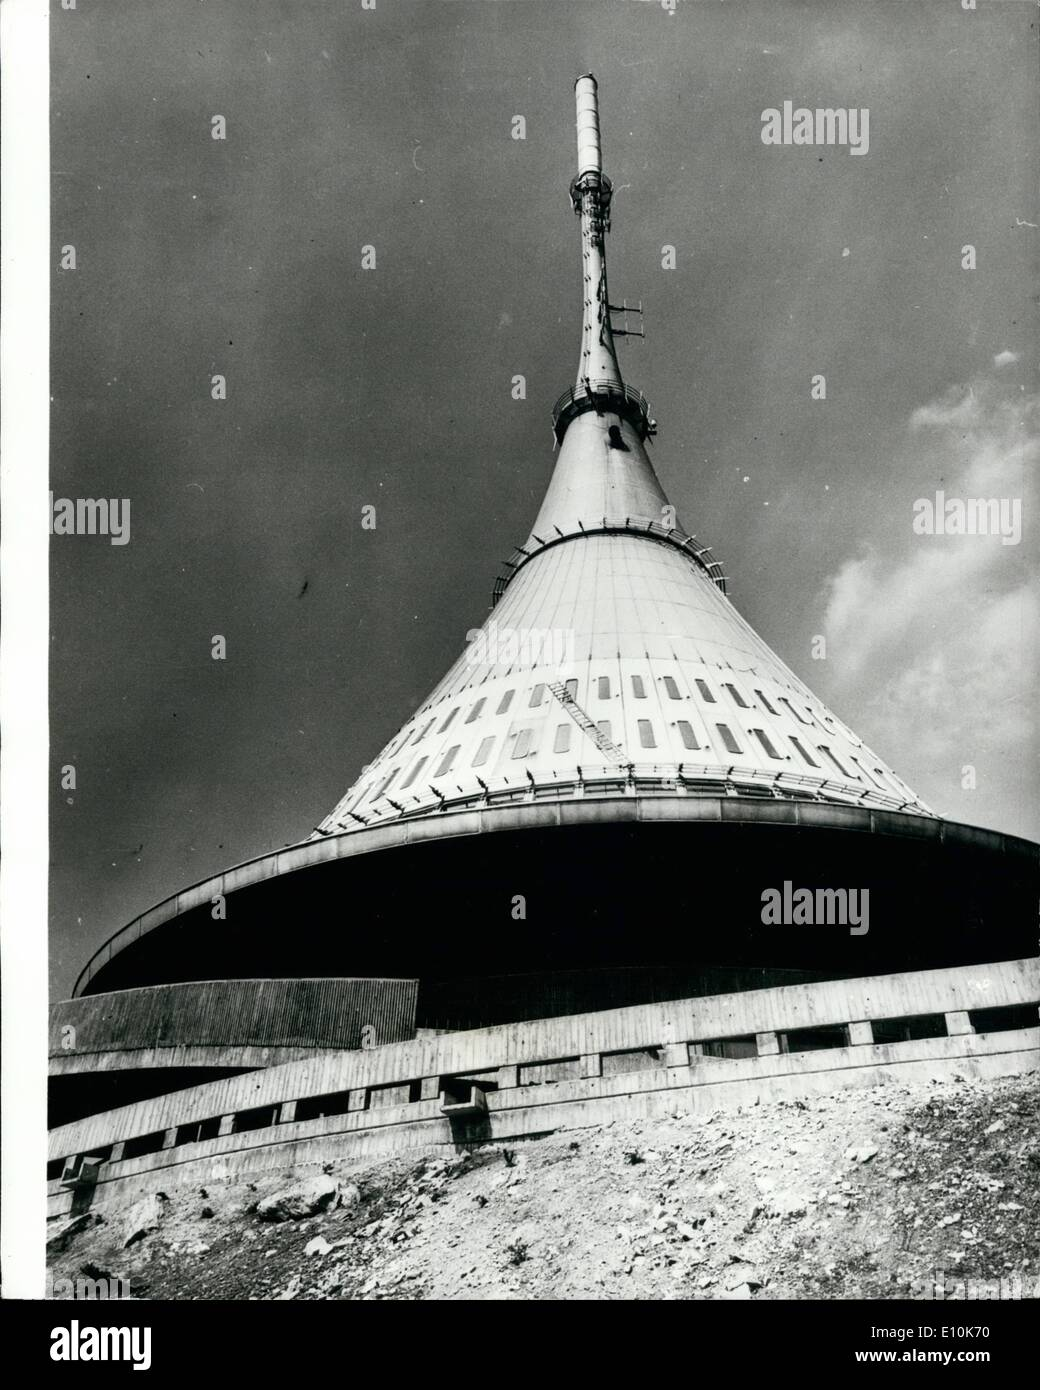 May 05, 1973 - The ''Structure of the Cosmic age'' On top of mount Jested , the highest peak of the Lusation Mountains in Northern Bohemia, which may be easily reached from Libero by a cable-way, serves not only as television re-translation tower, but is to serve not only as television re-translation tower, but is to serve as hotel and restaurant shortly as work on the interior outfit is nearing completion. The structure was designed by architect ING. Karrek Hubacek, who was awarded the international A - Stock Image